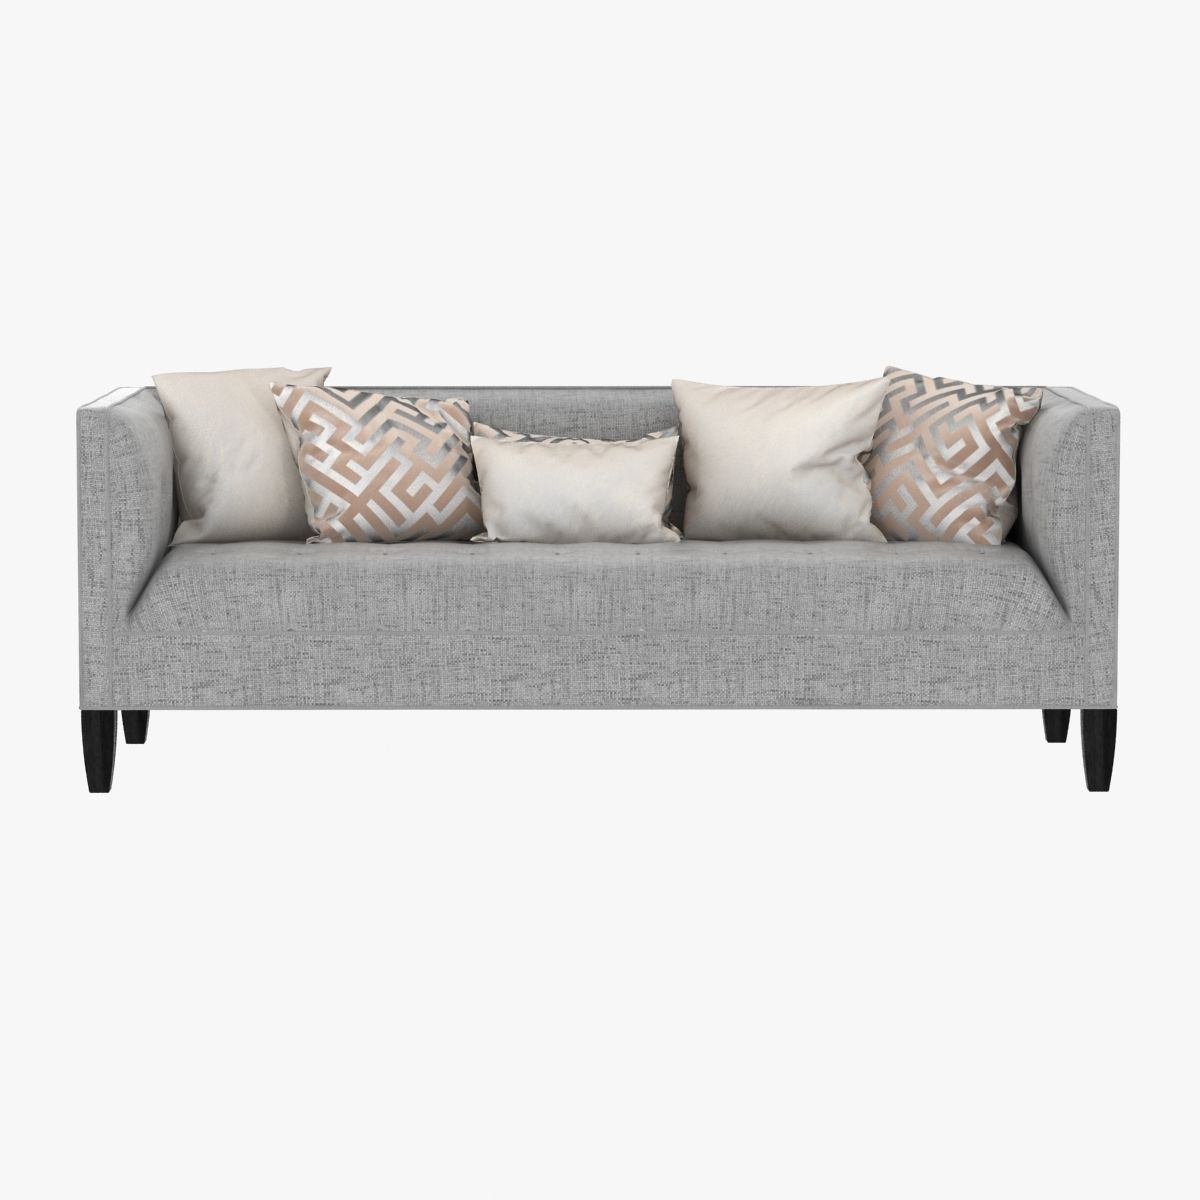 Mitchell Gold Bob Williams Kennedy Sofa 3d Model Max Obj Mtl 3ds Fbx ...